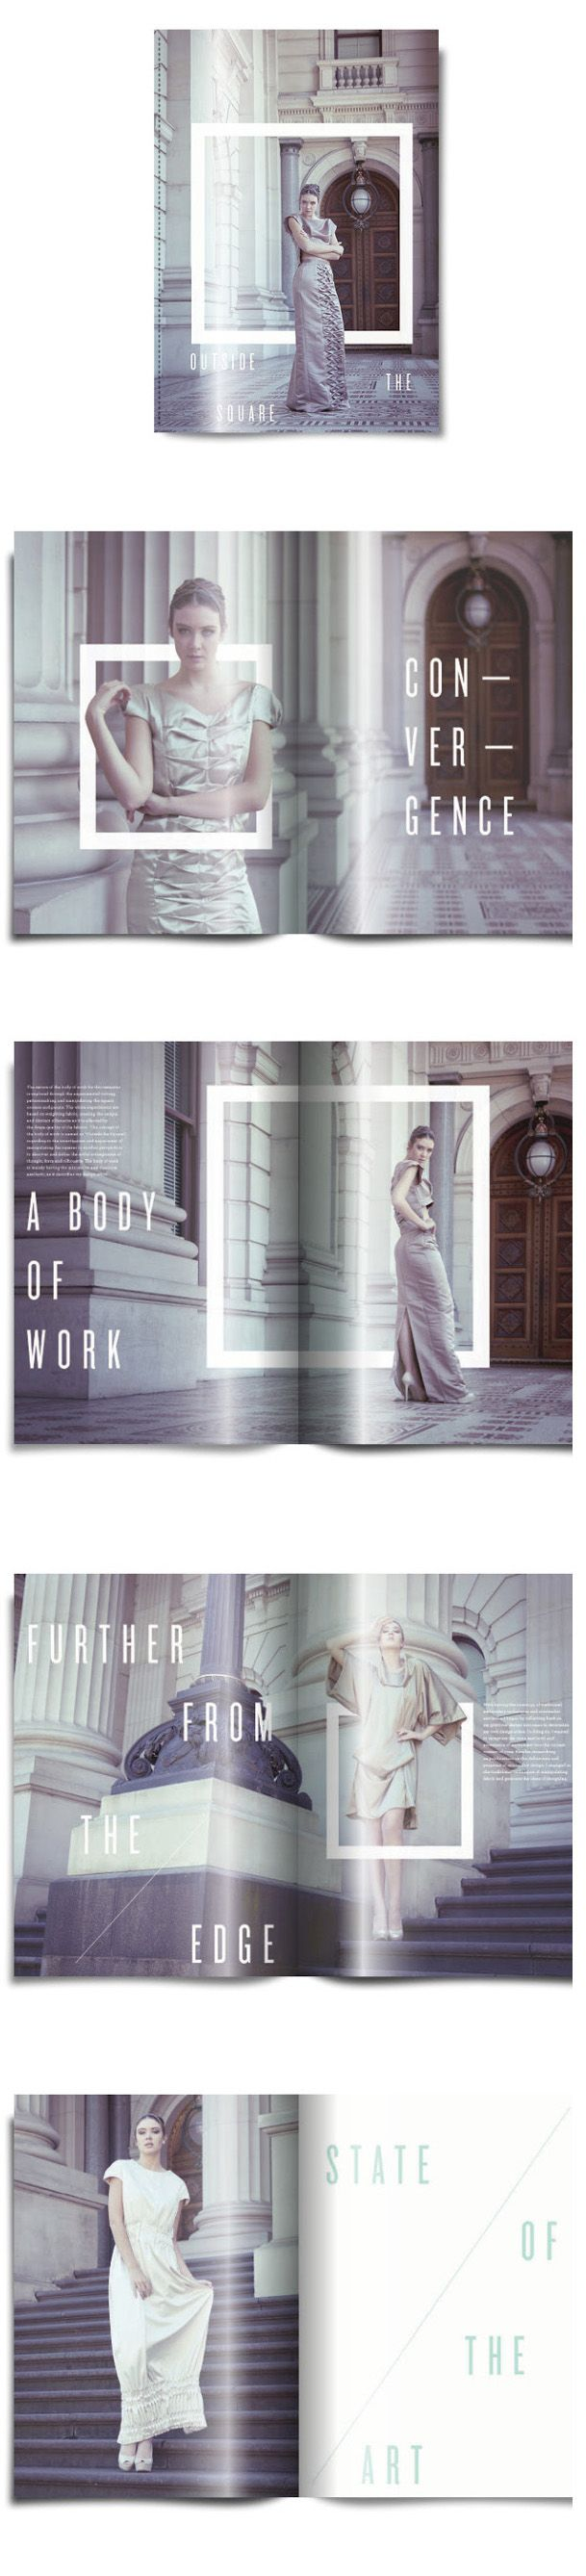 Fashion / Look Book #editorial #layout